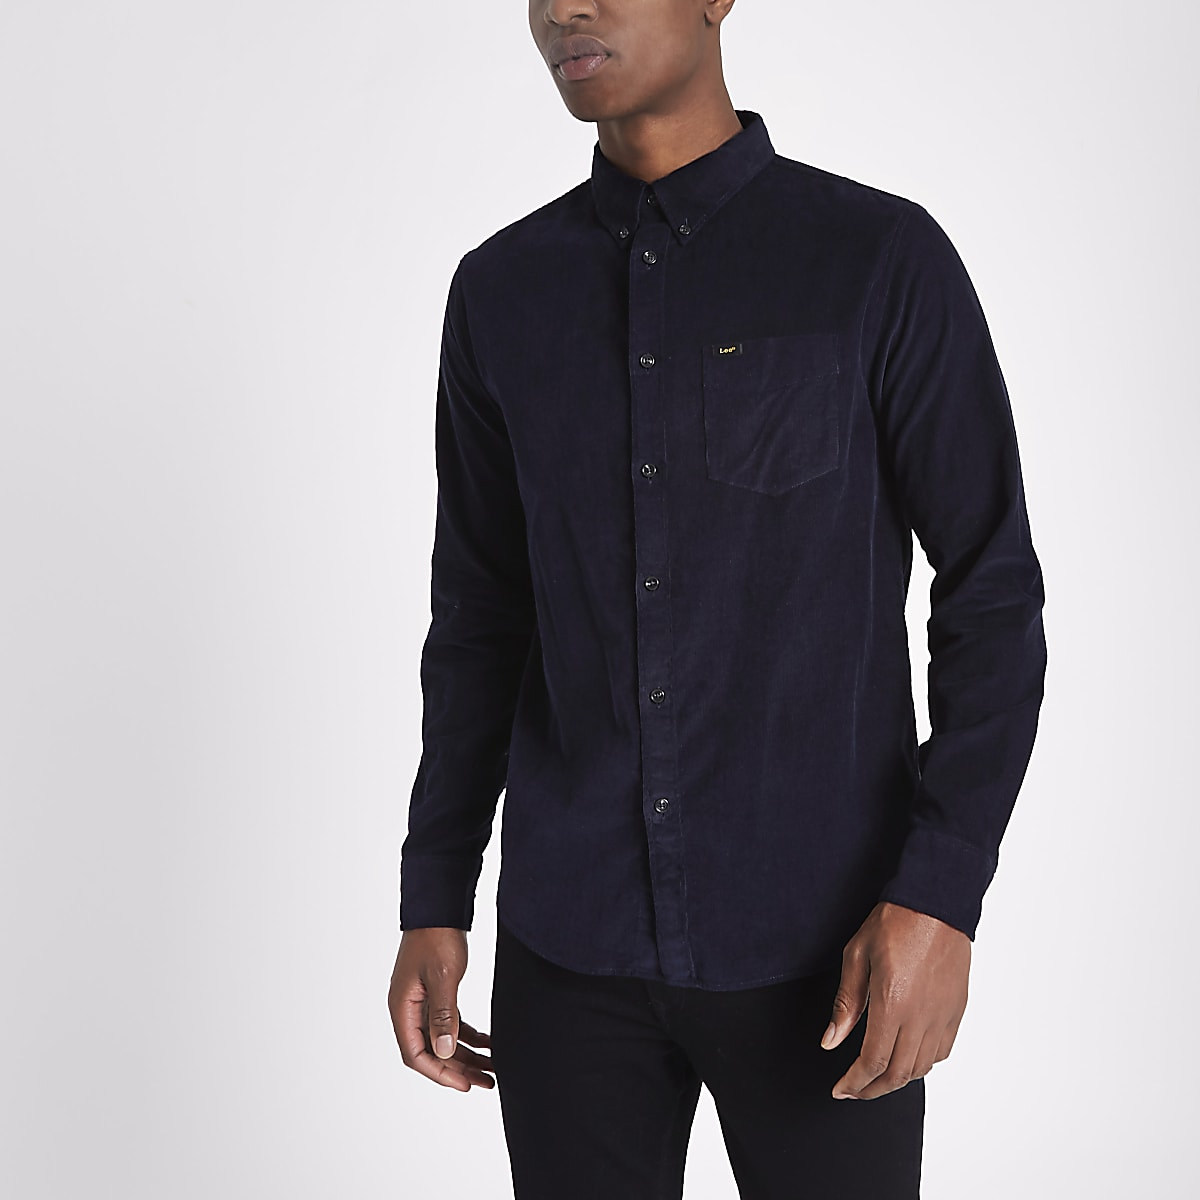 Lee navy cord button-down Oxford shirt